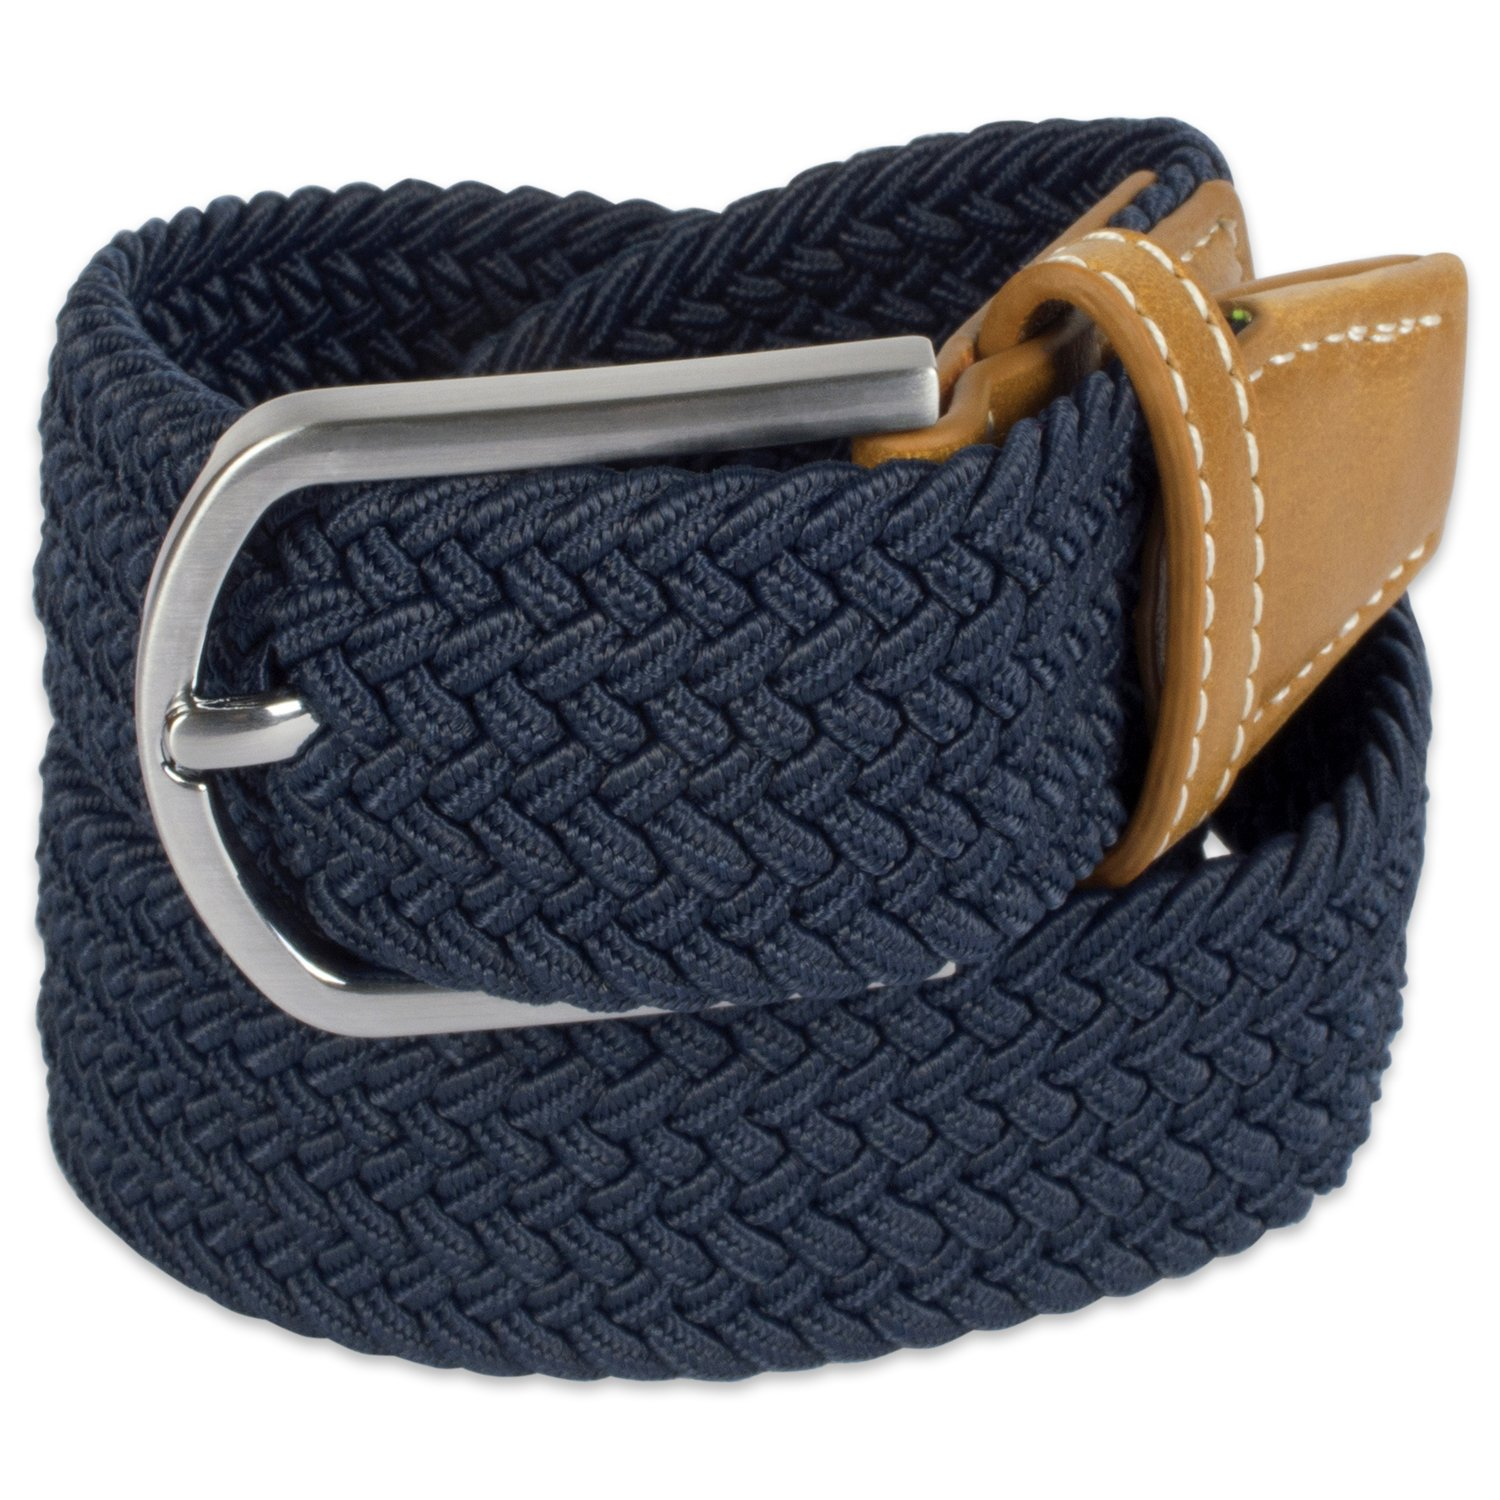 E-Living Store Men's 32mm Woven Expandable Braided Stretch Belts, Sizes, Navy, Large (Waist Size 38-40'')